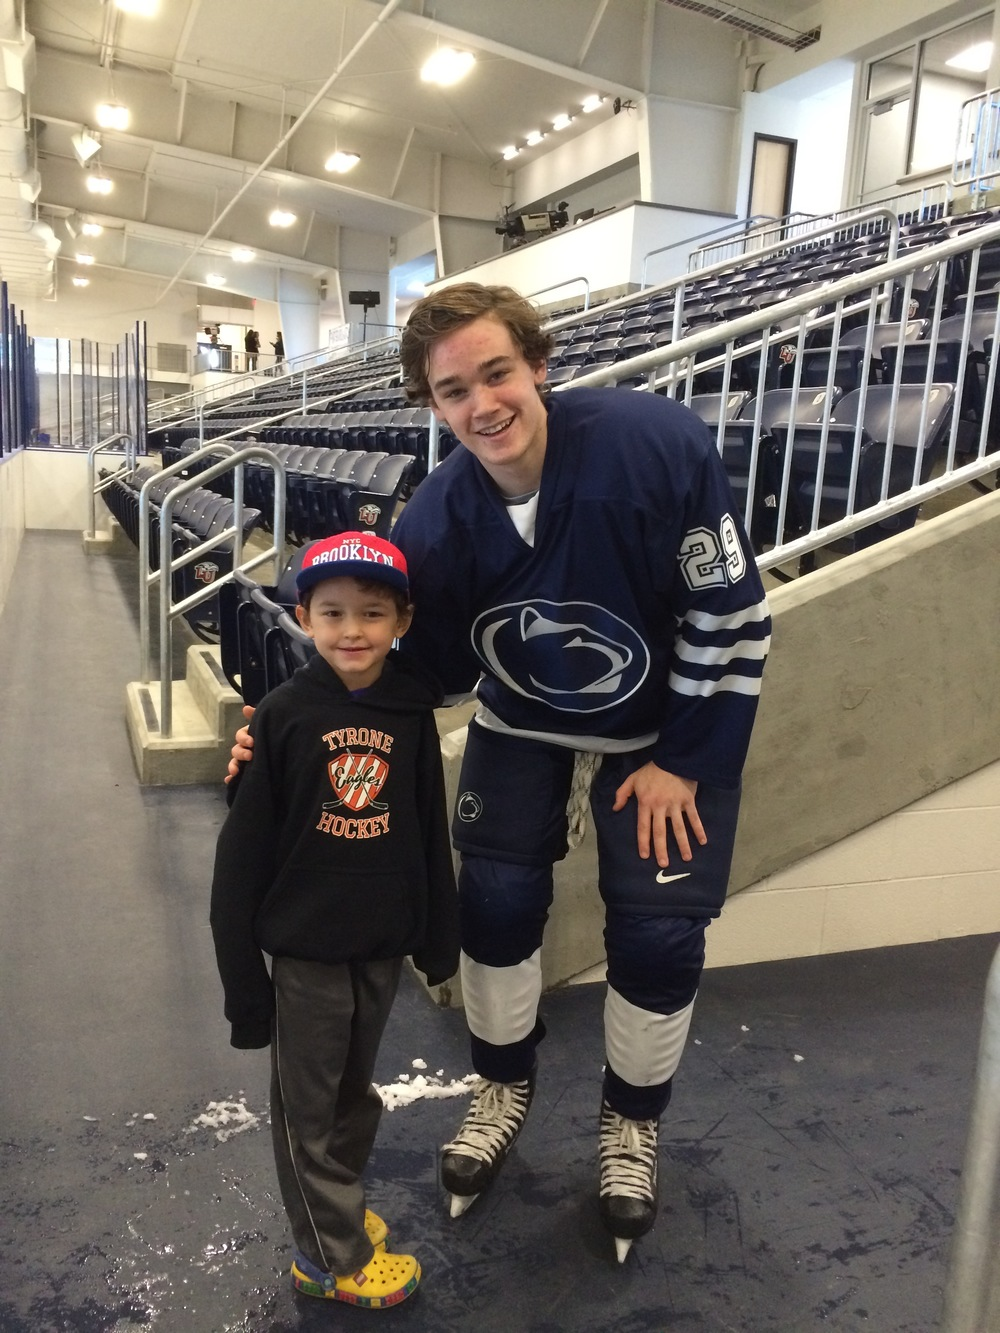 Ice Lion Ambrose Aquadro grew up playing roller hockey in Tyrone.  Here he is pictured with Tyrone youth hockey player Elah Glenny.